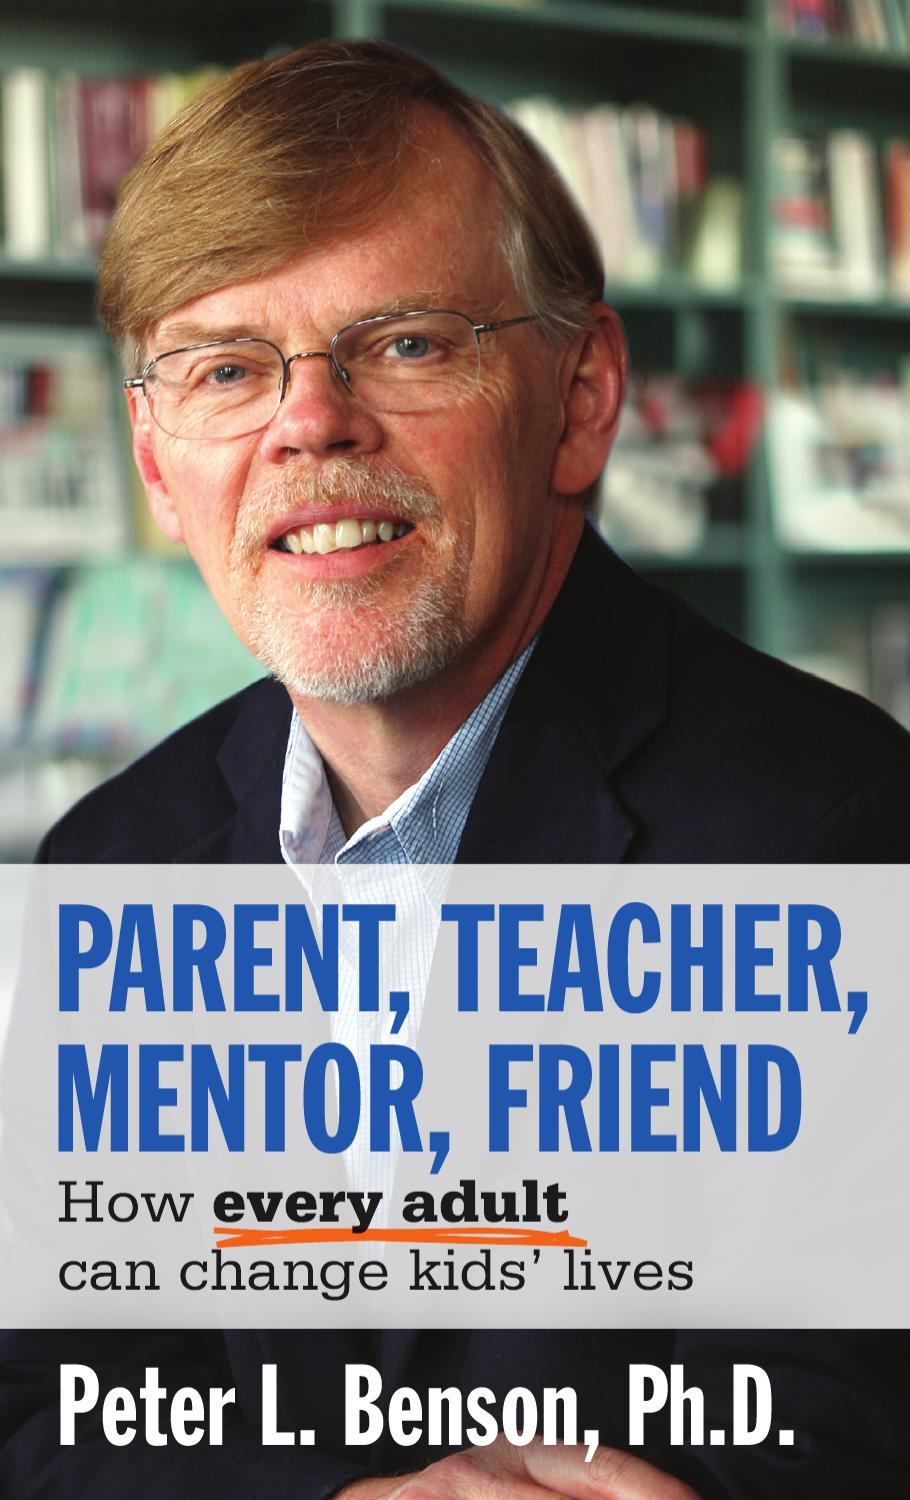 Parent Teacher Mentor Friend By Search Institute Issuu border=